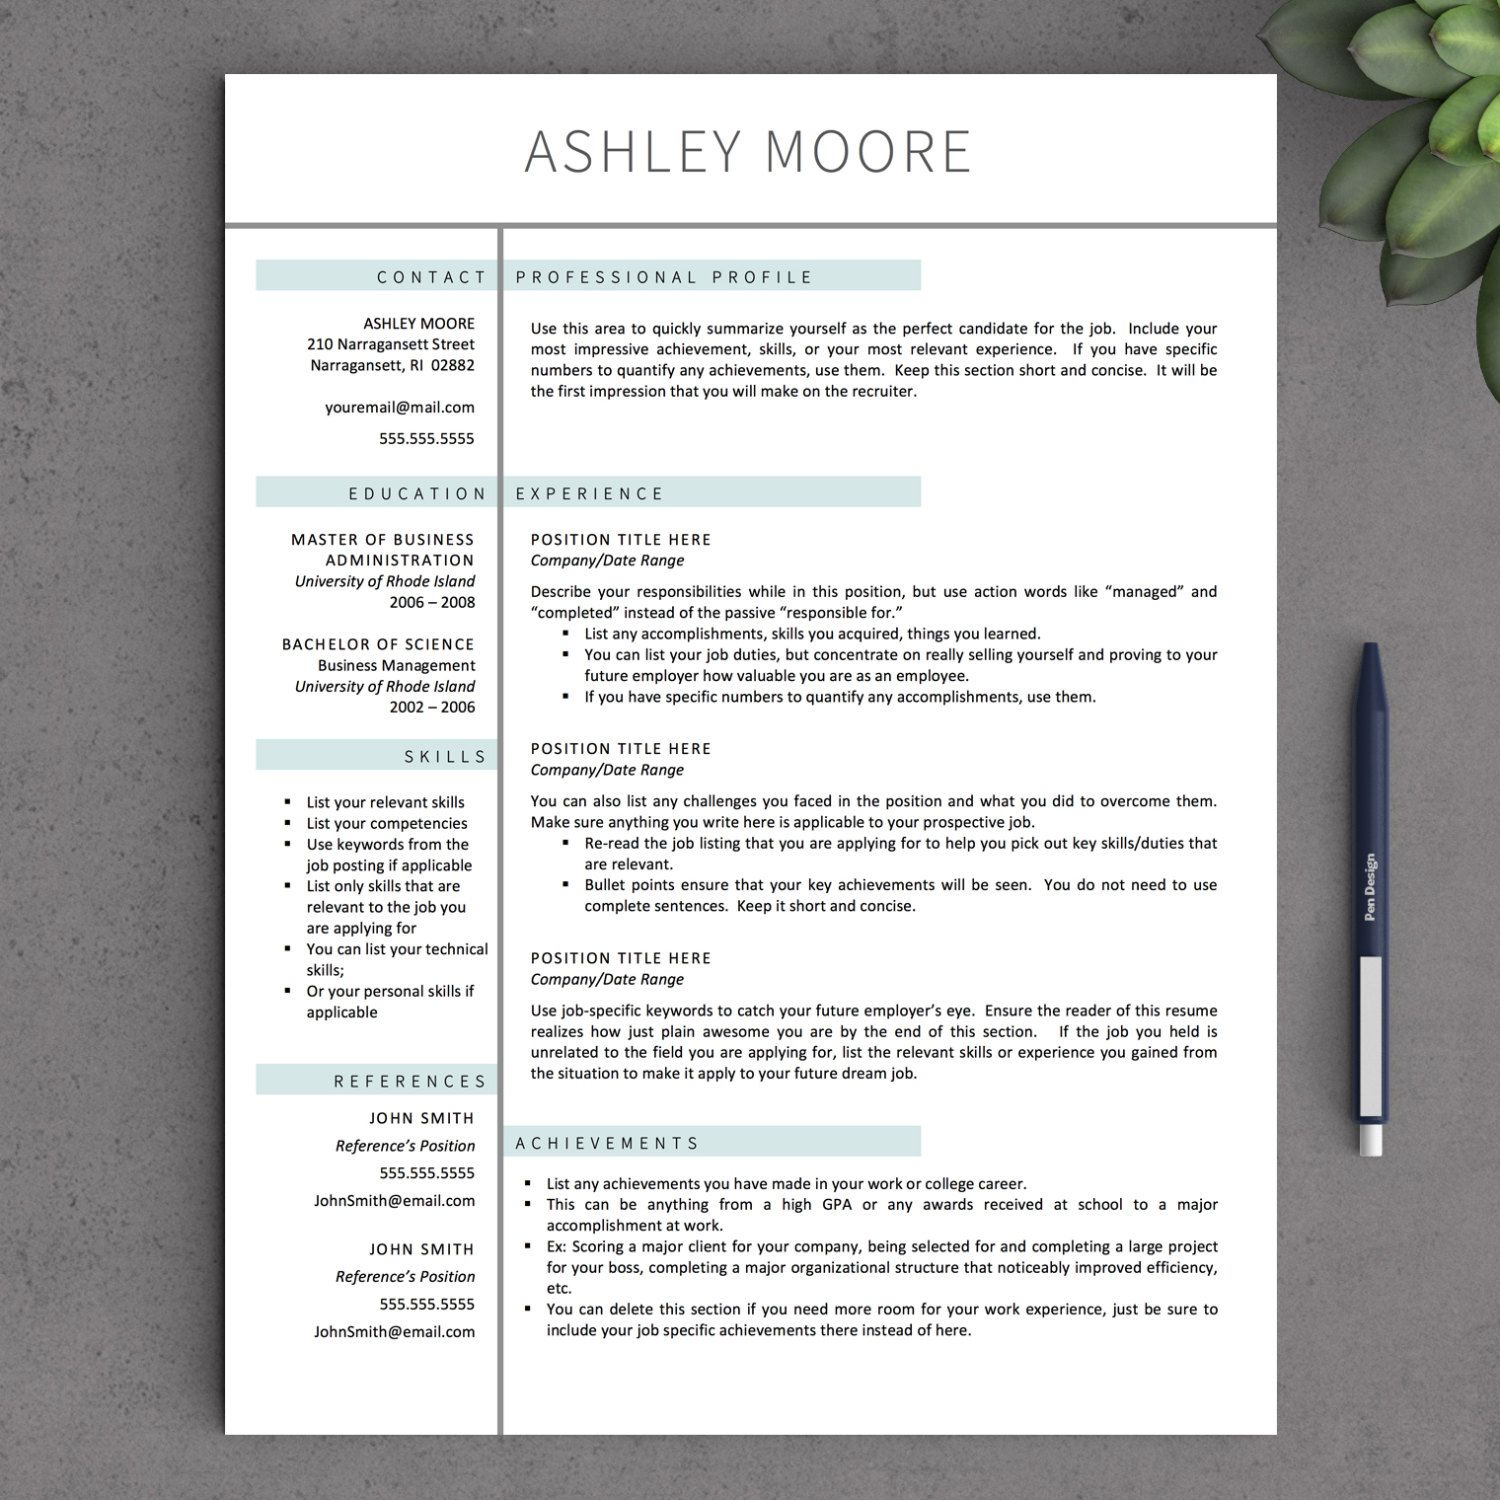 Apple Pages Resume Template Download Apple Pages Resume Template Download,  Appleu2026  Resume Template Free